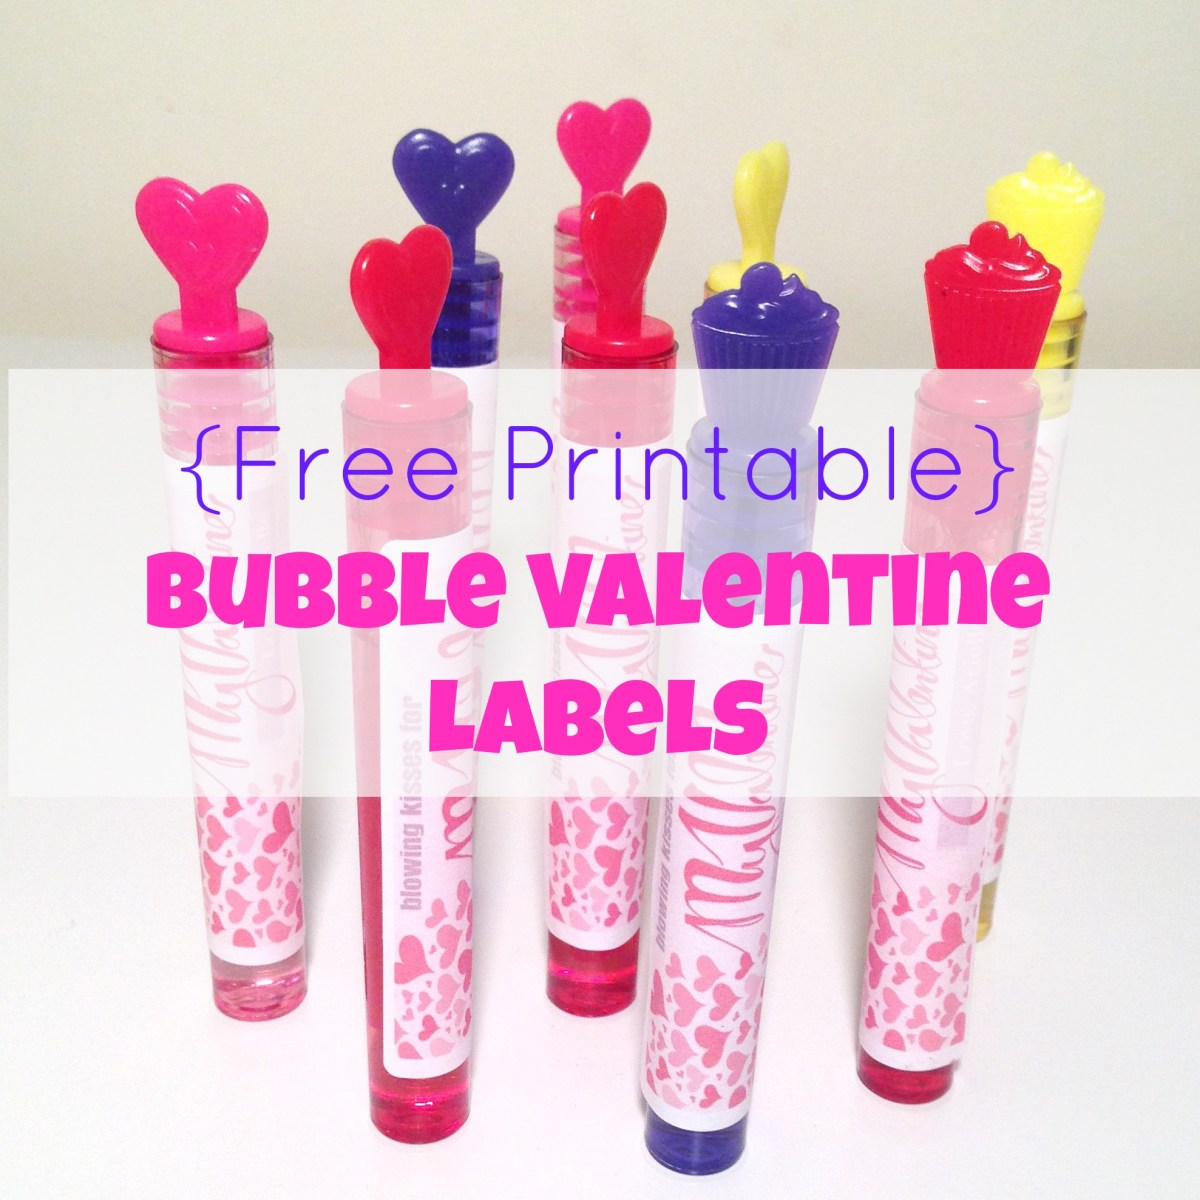 Free Printable - Bubble Valentines Labels